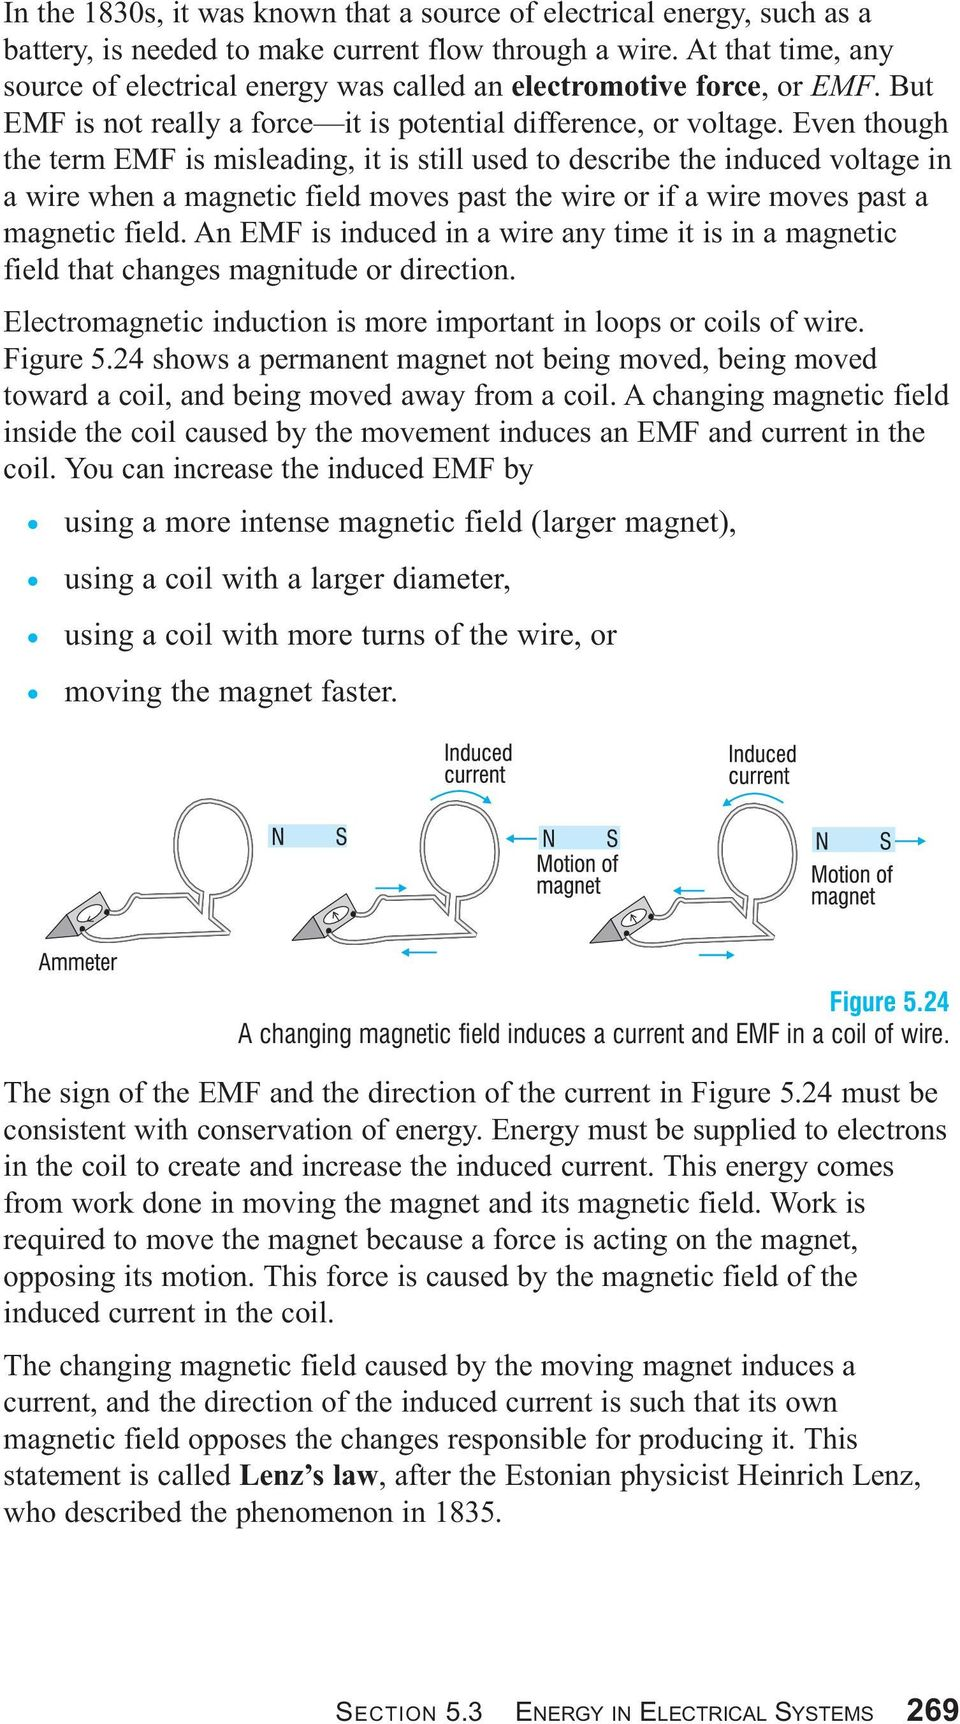 Even though the term EMF is misleading, it is still used to describe the induced voltage in a wire when a magnetic field moves past the wire or if a wire moves past a magnetic field.